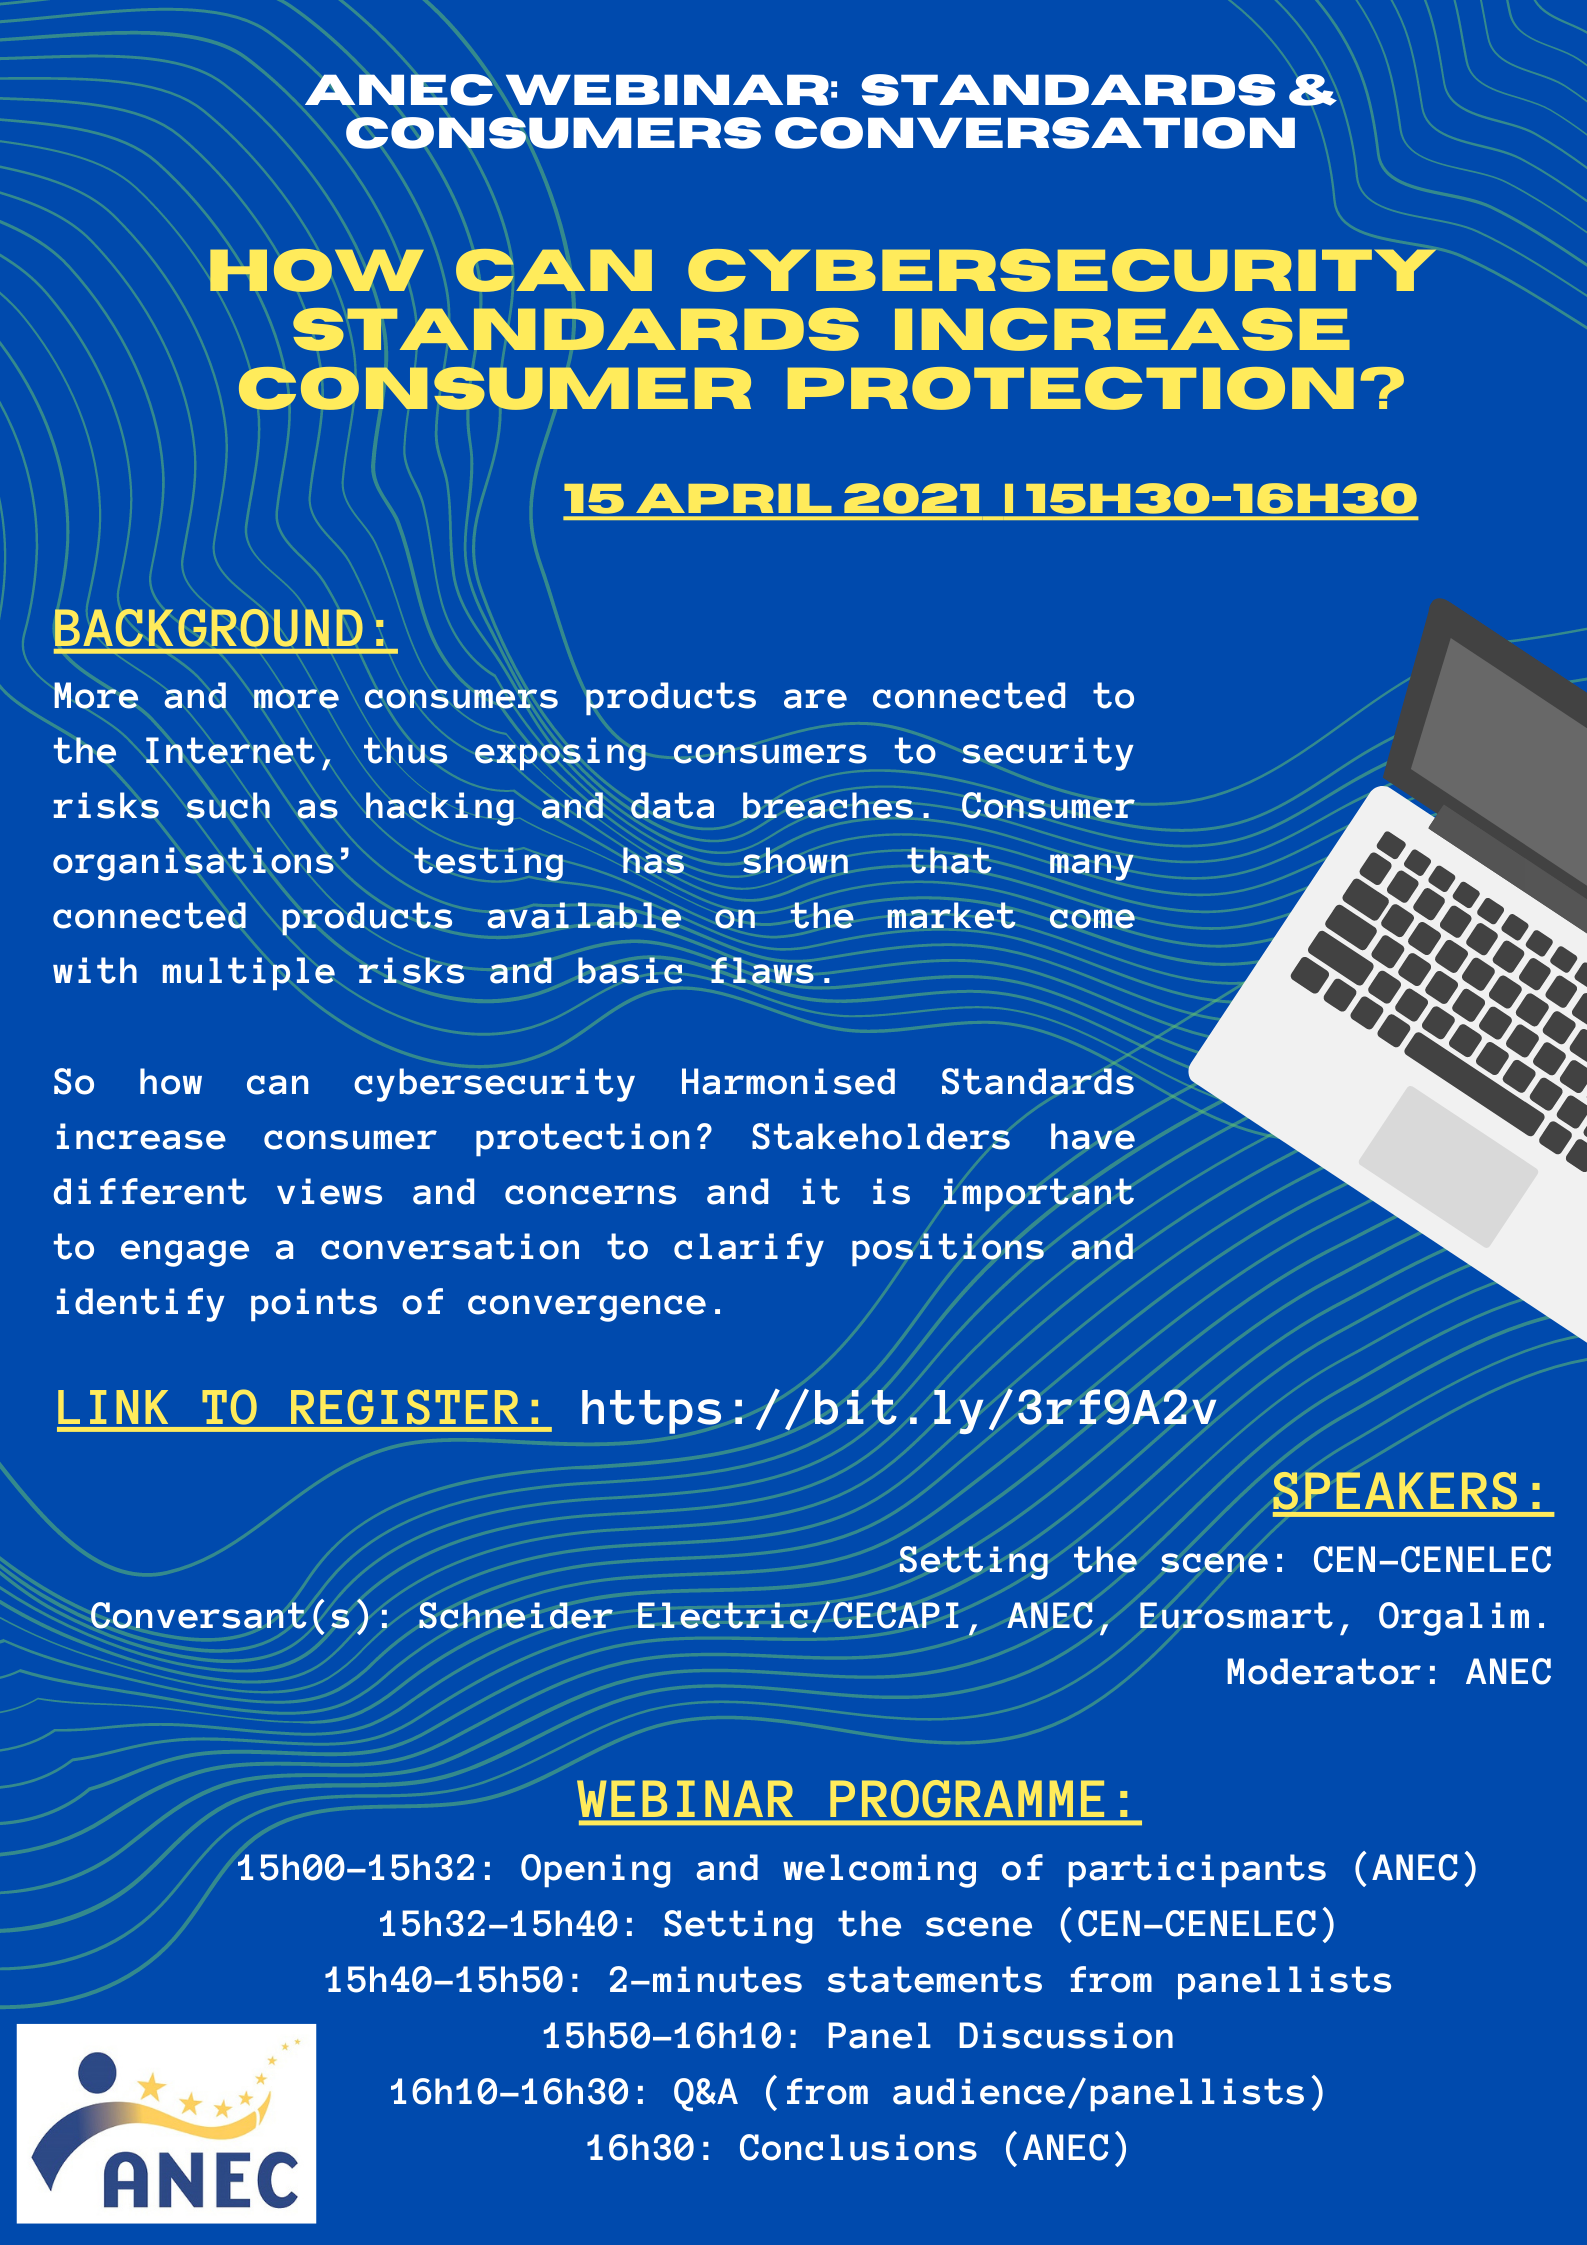 ANEC Webinar How can cybersecurity standards increase consumer protection 15 April